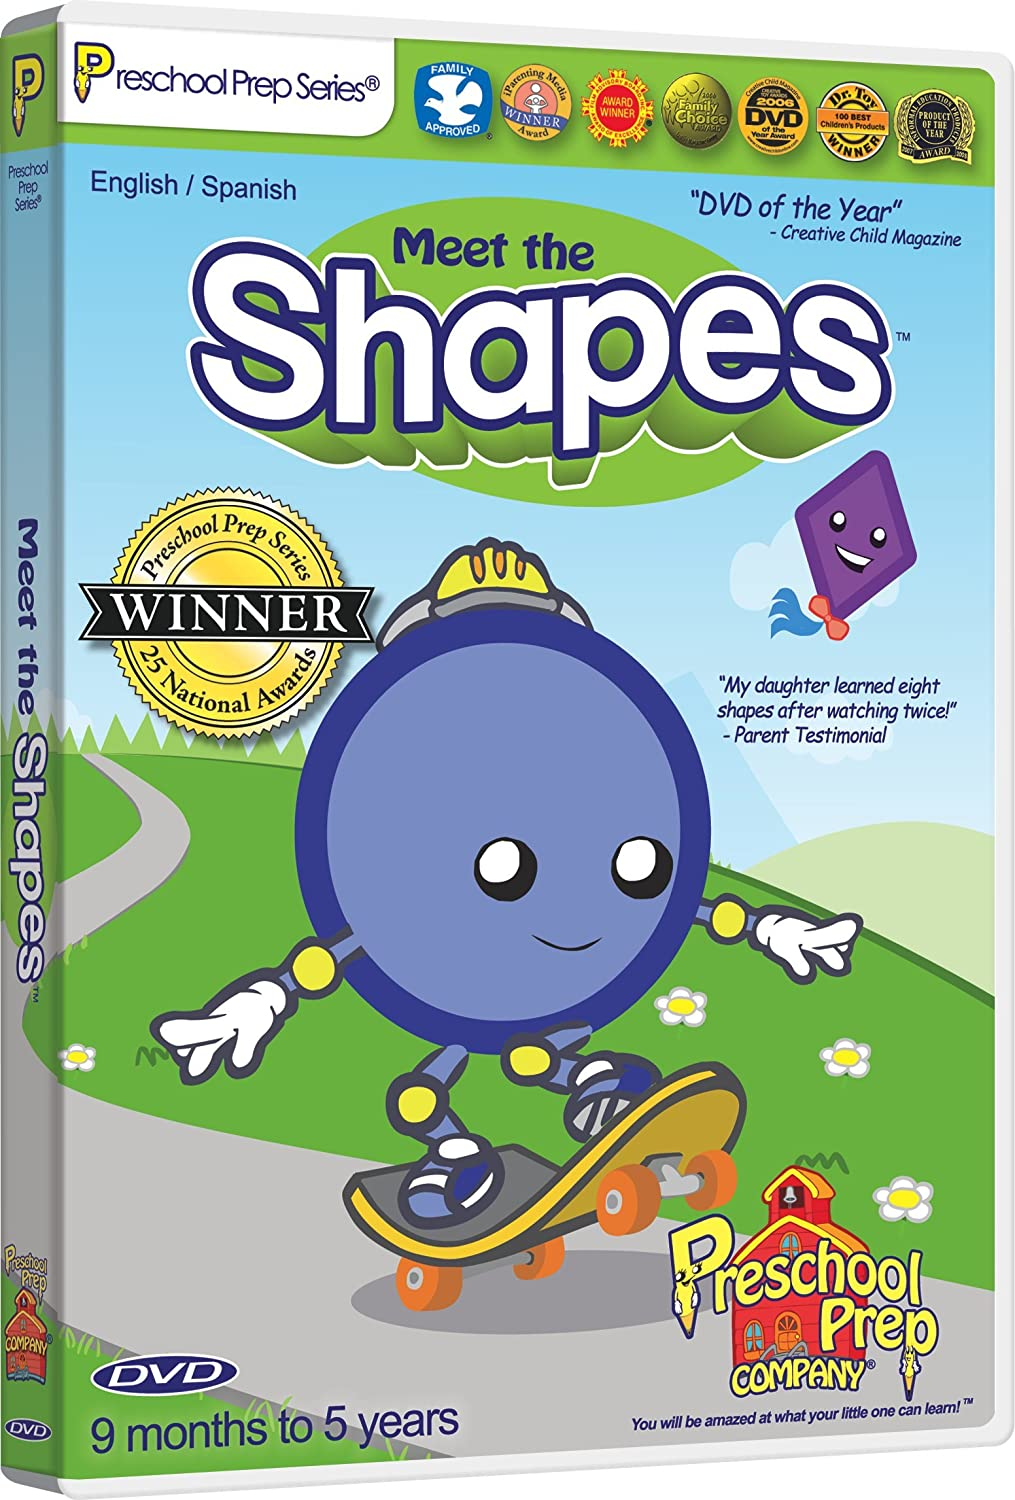 Amazon.com: Meet the Shapes DVD: Animation, Kathy Oxley: Movies & TV